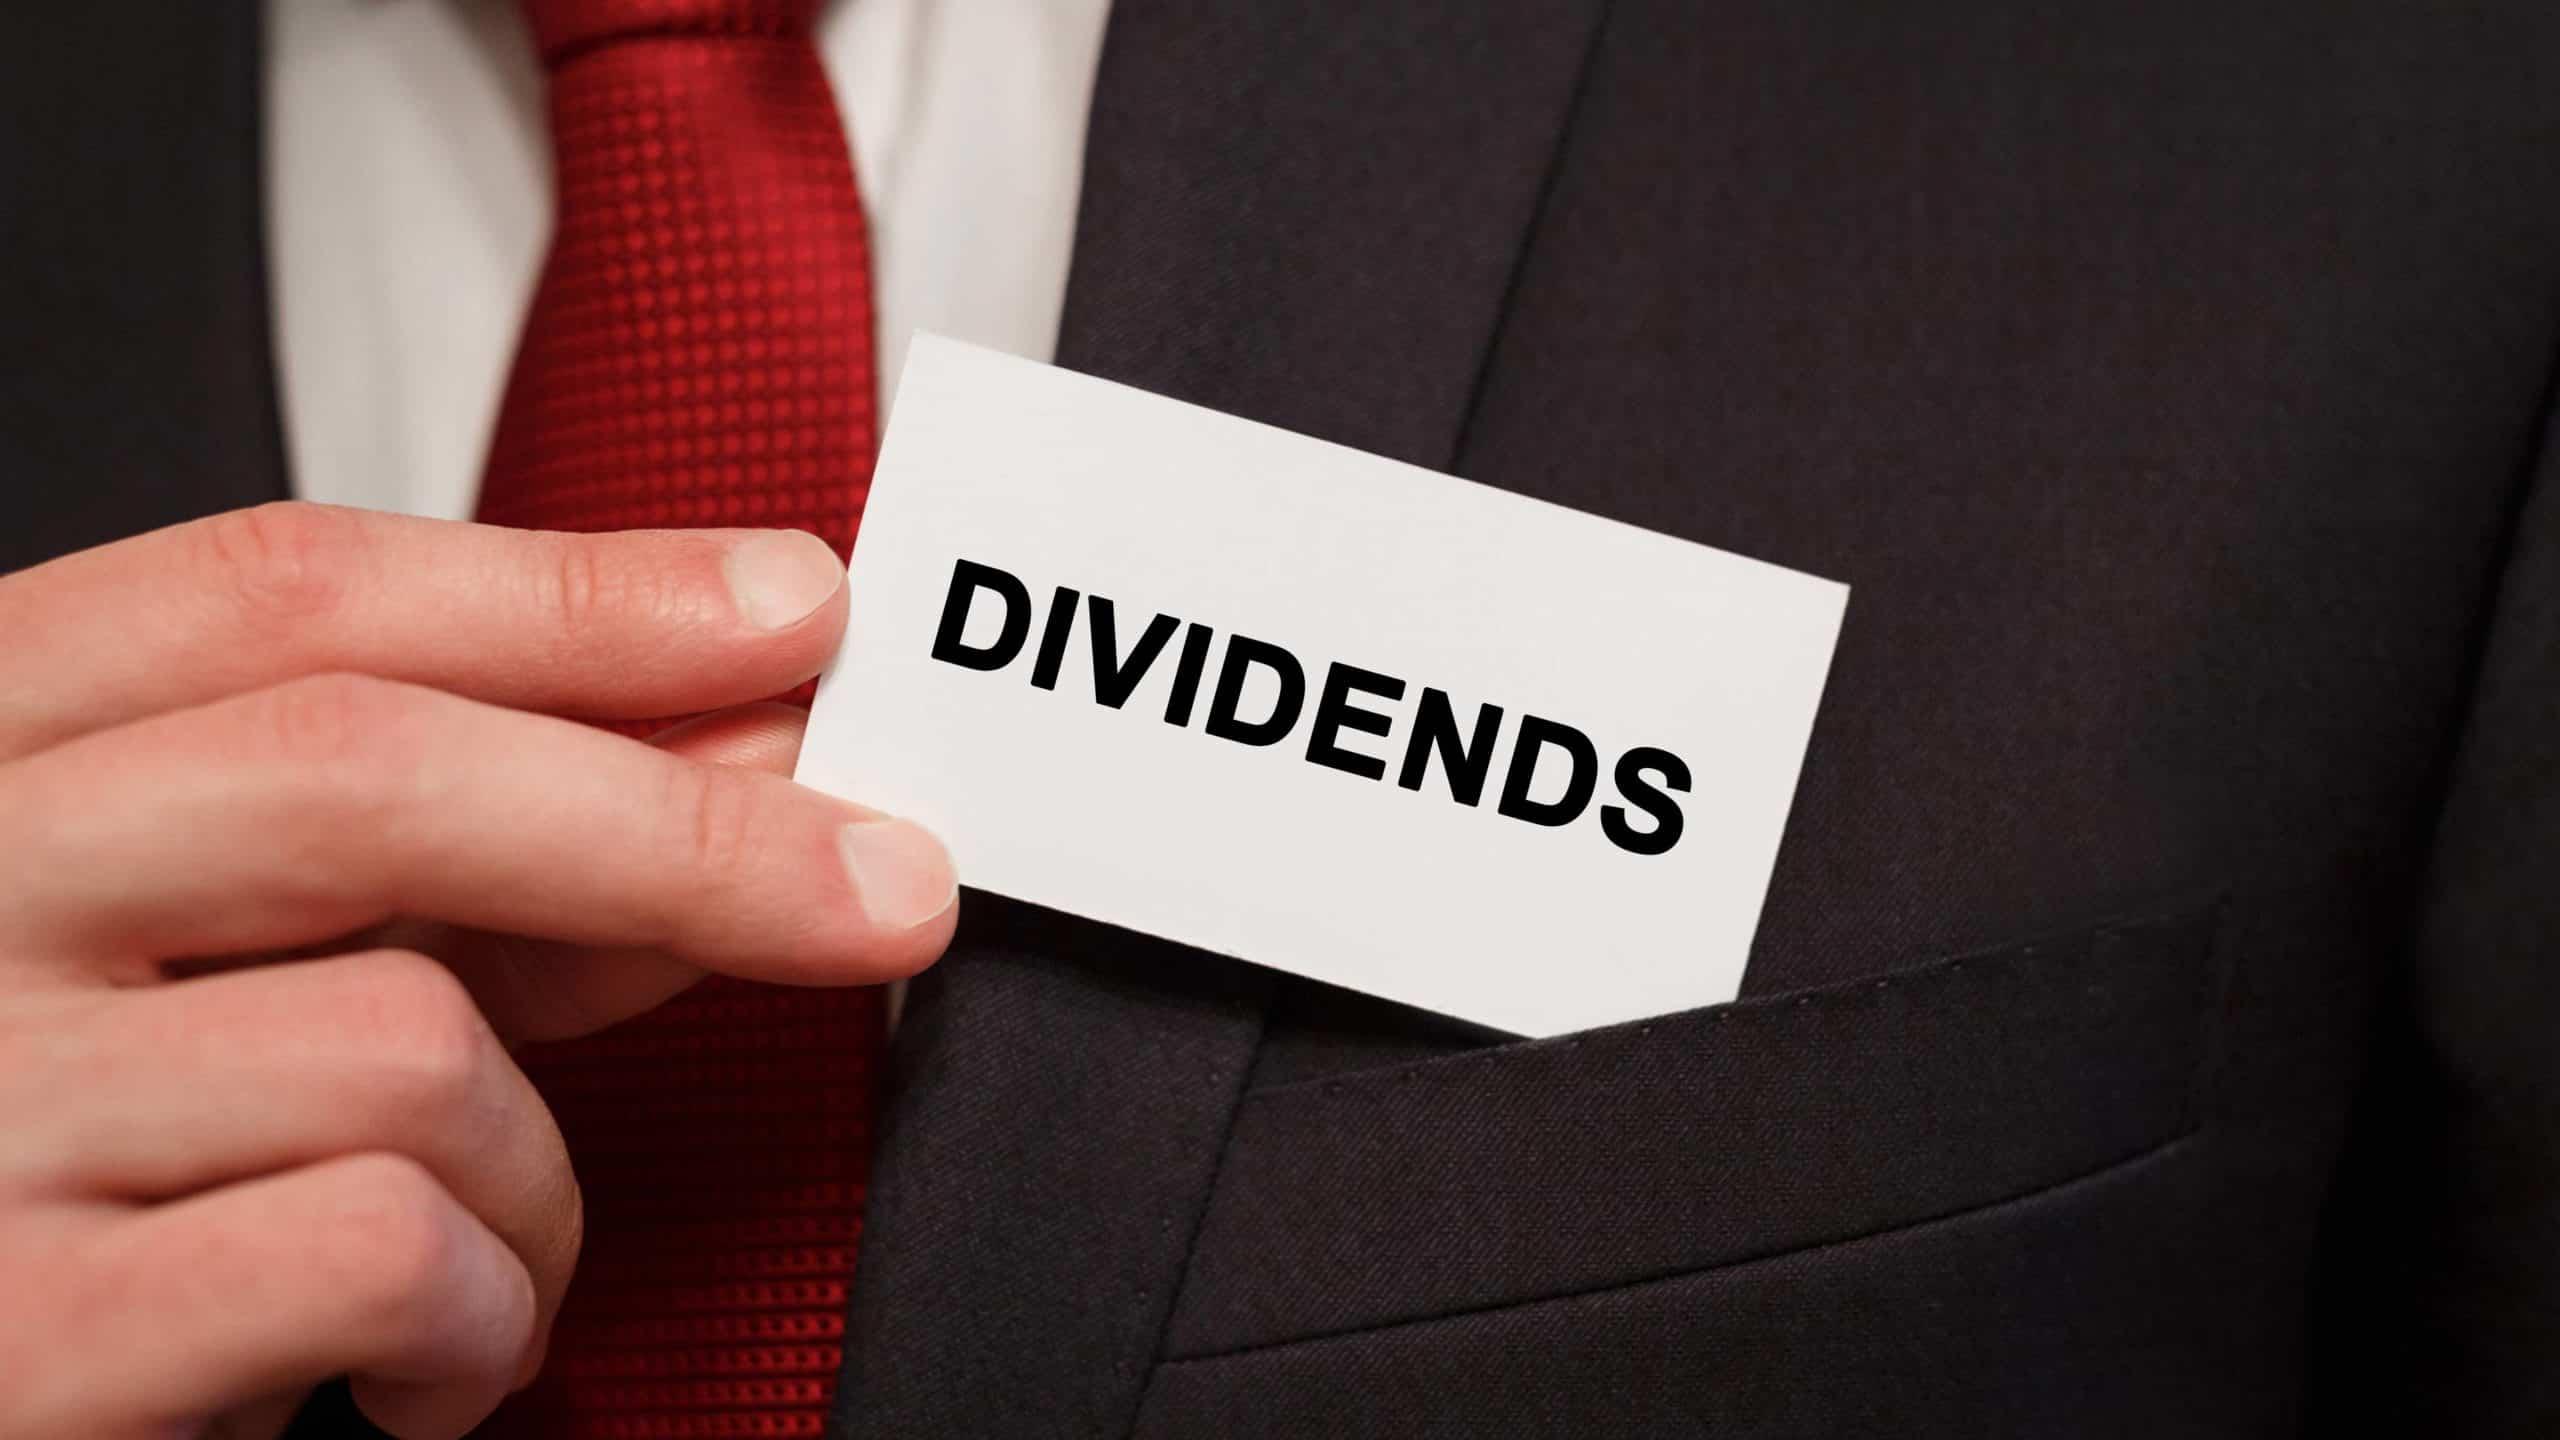 man placing business card in pocket that says dividends signifying asx dividend shares